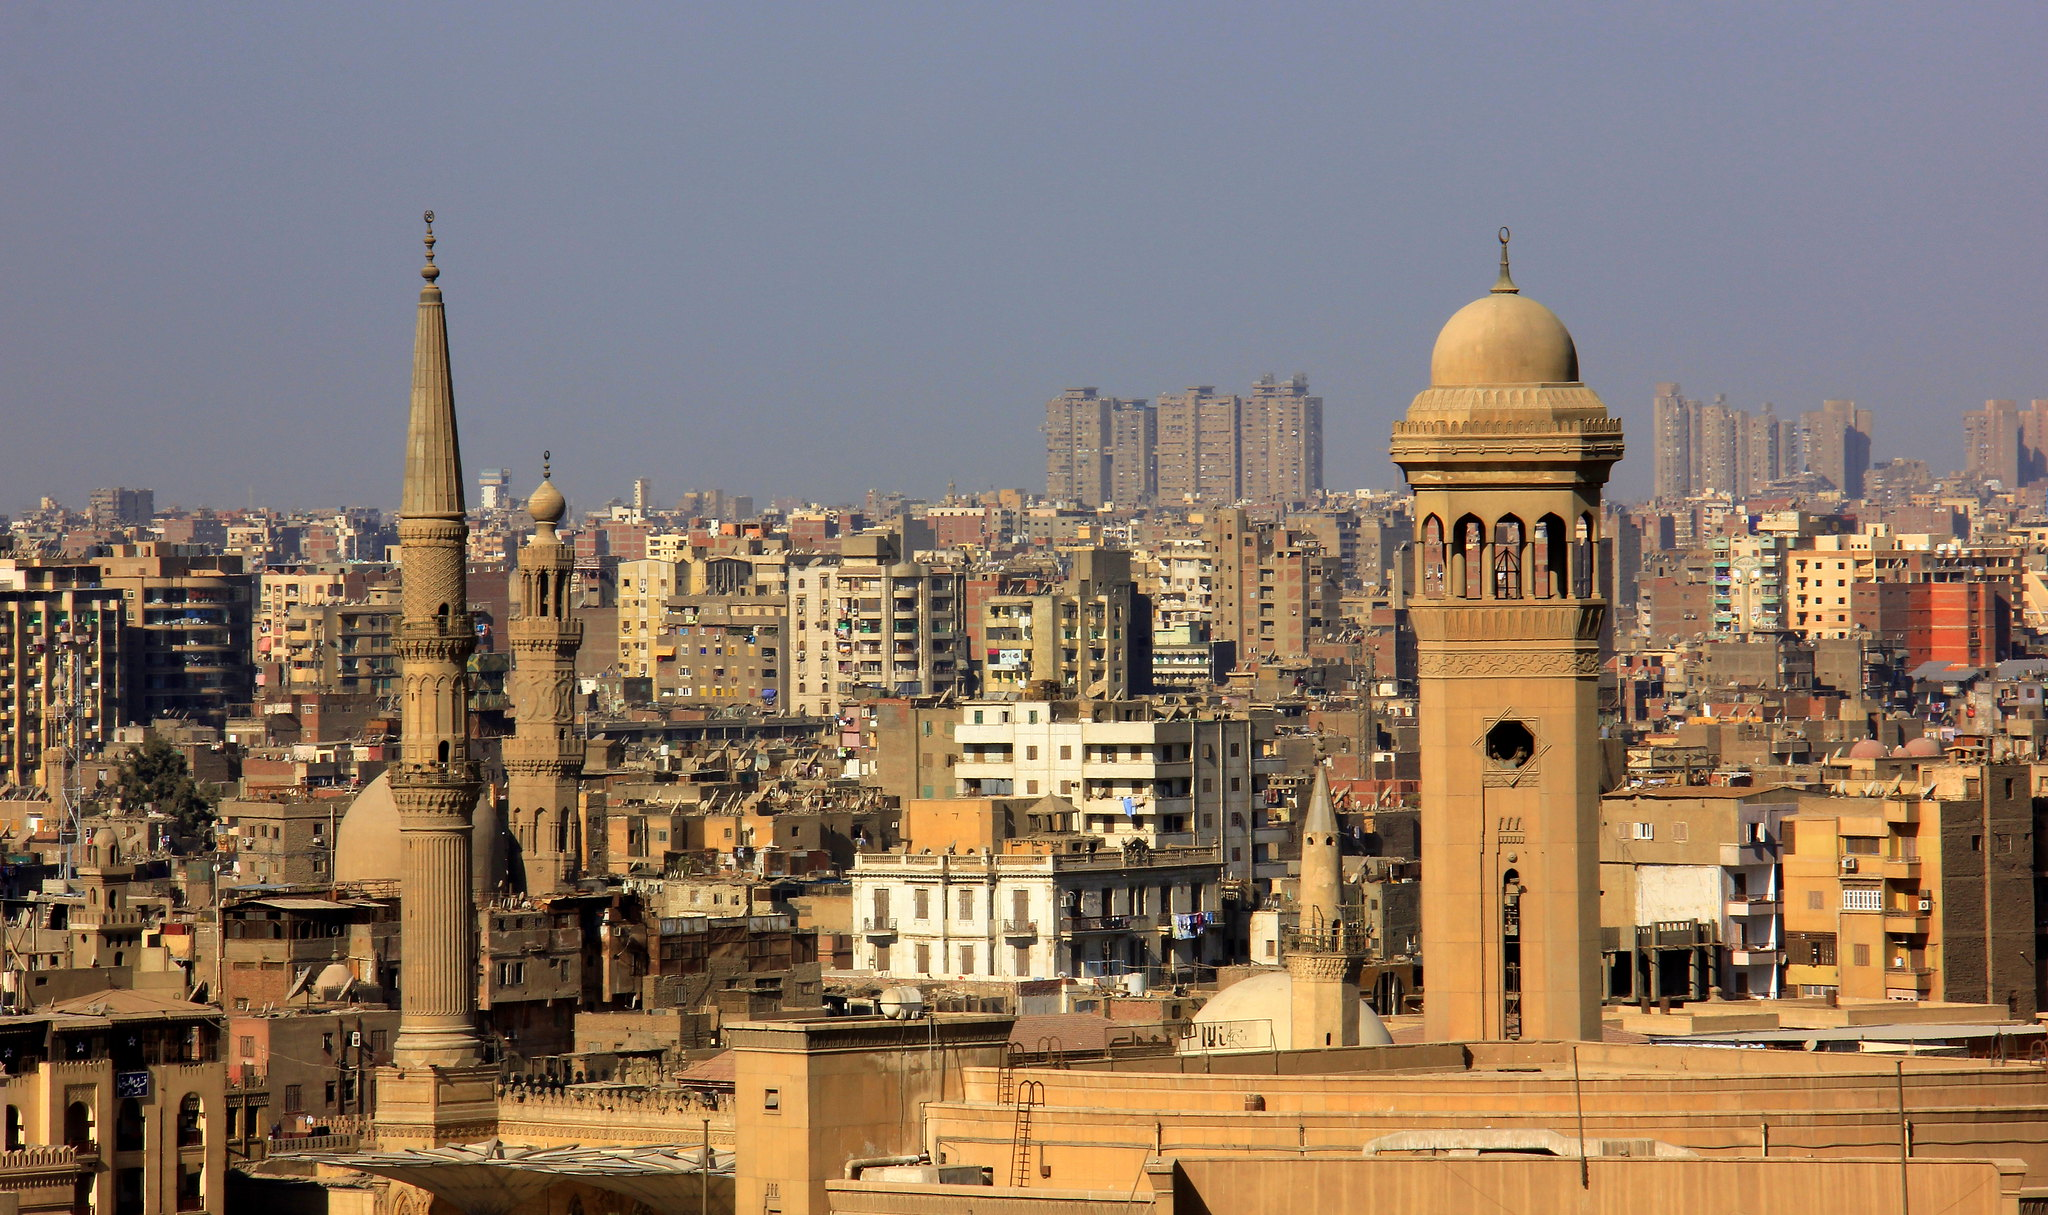 Cairo spring is a good time for visiting